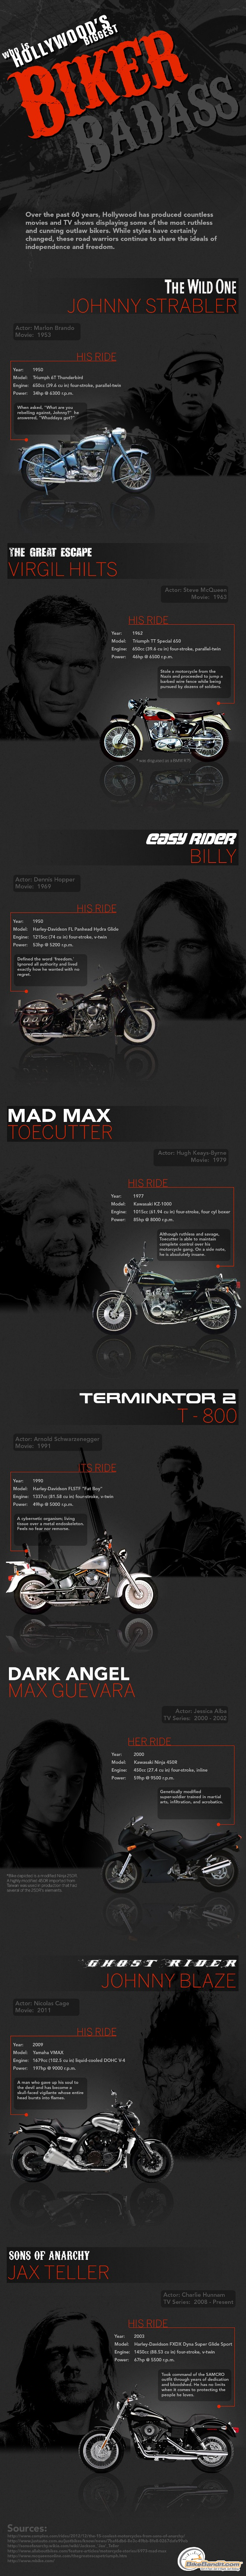 infographic of Who is Hollywood's Biggest Biker Badass? from BikeBandit.com